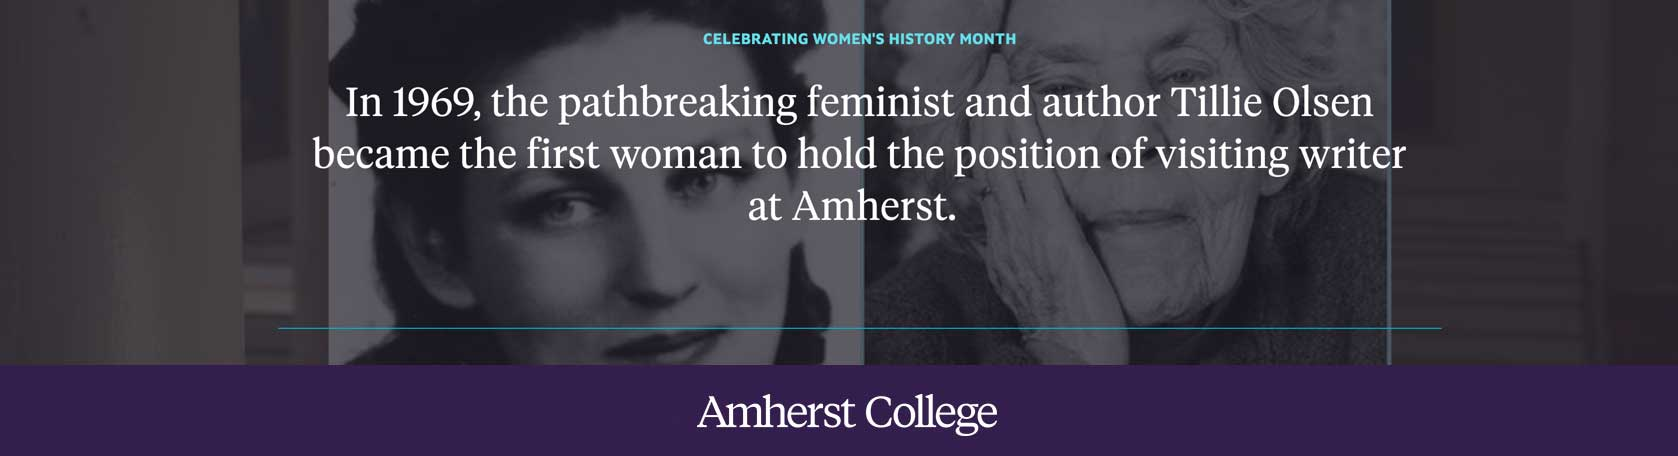 in 1969 Tillie Olsen became the first woman to hold the position of visiting writer at Amehrst